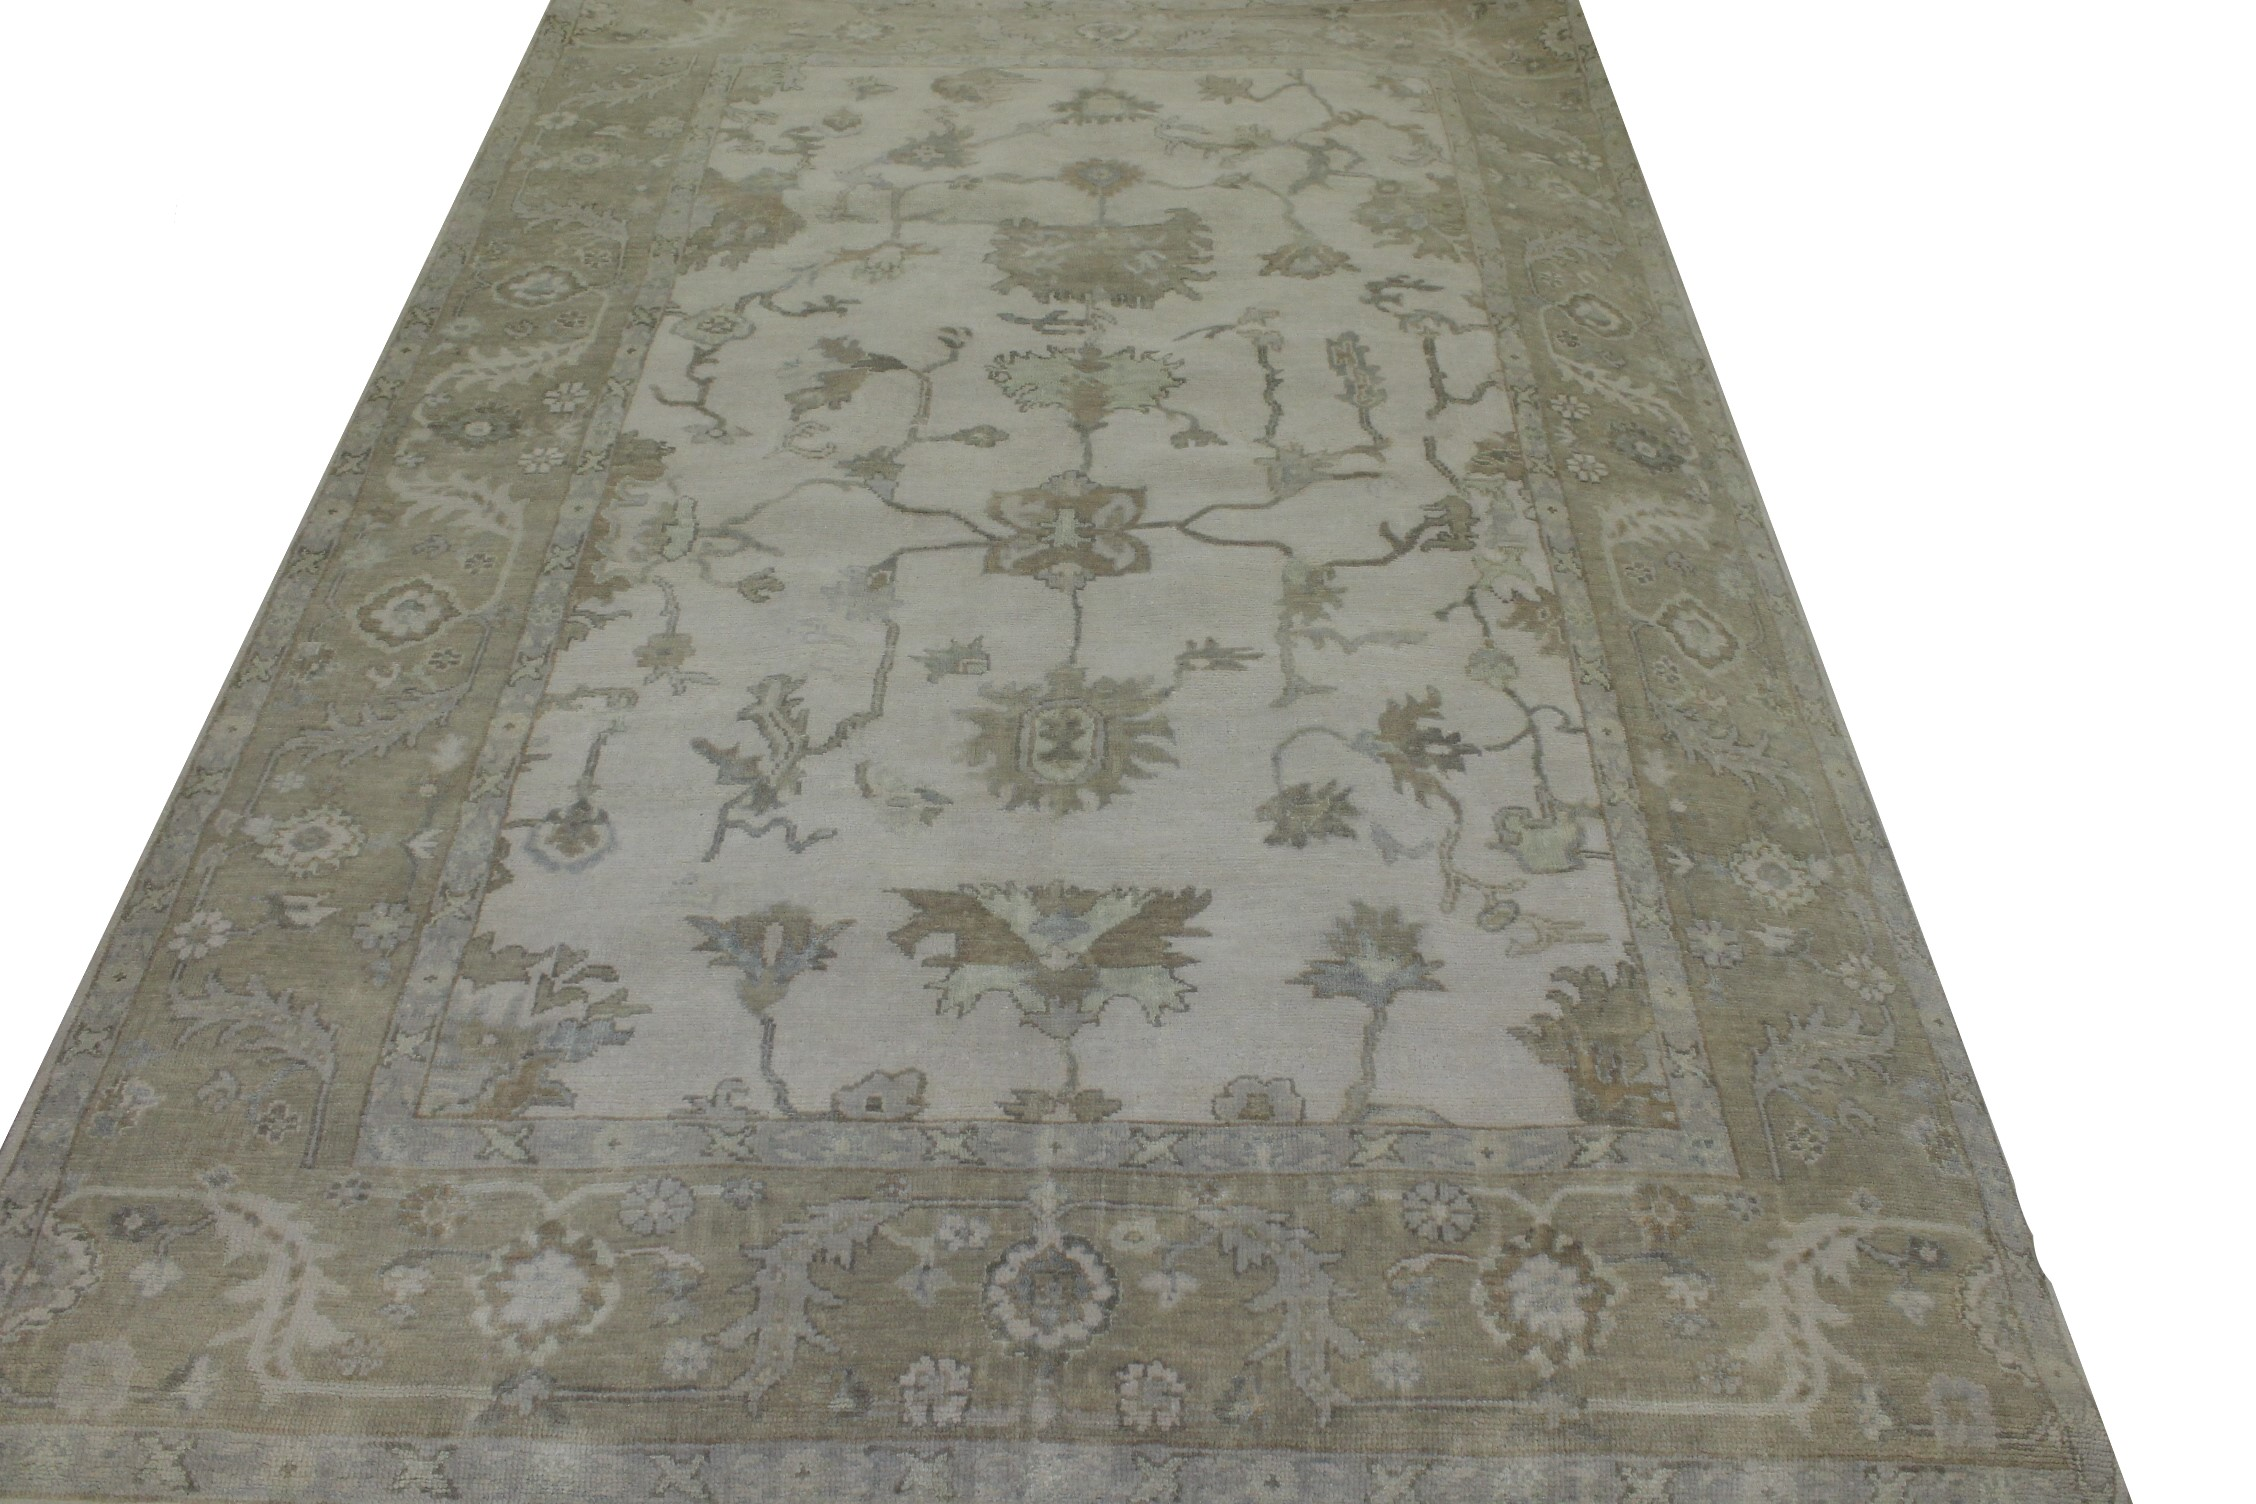 6x9 Oushak Hand Knotted Wool Area Rug - MR023490